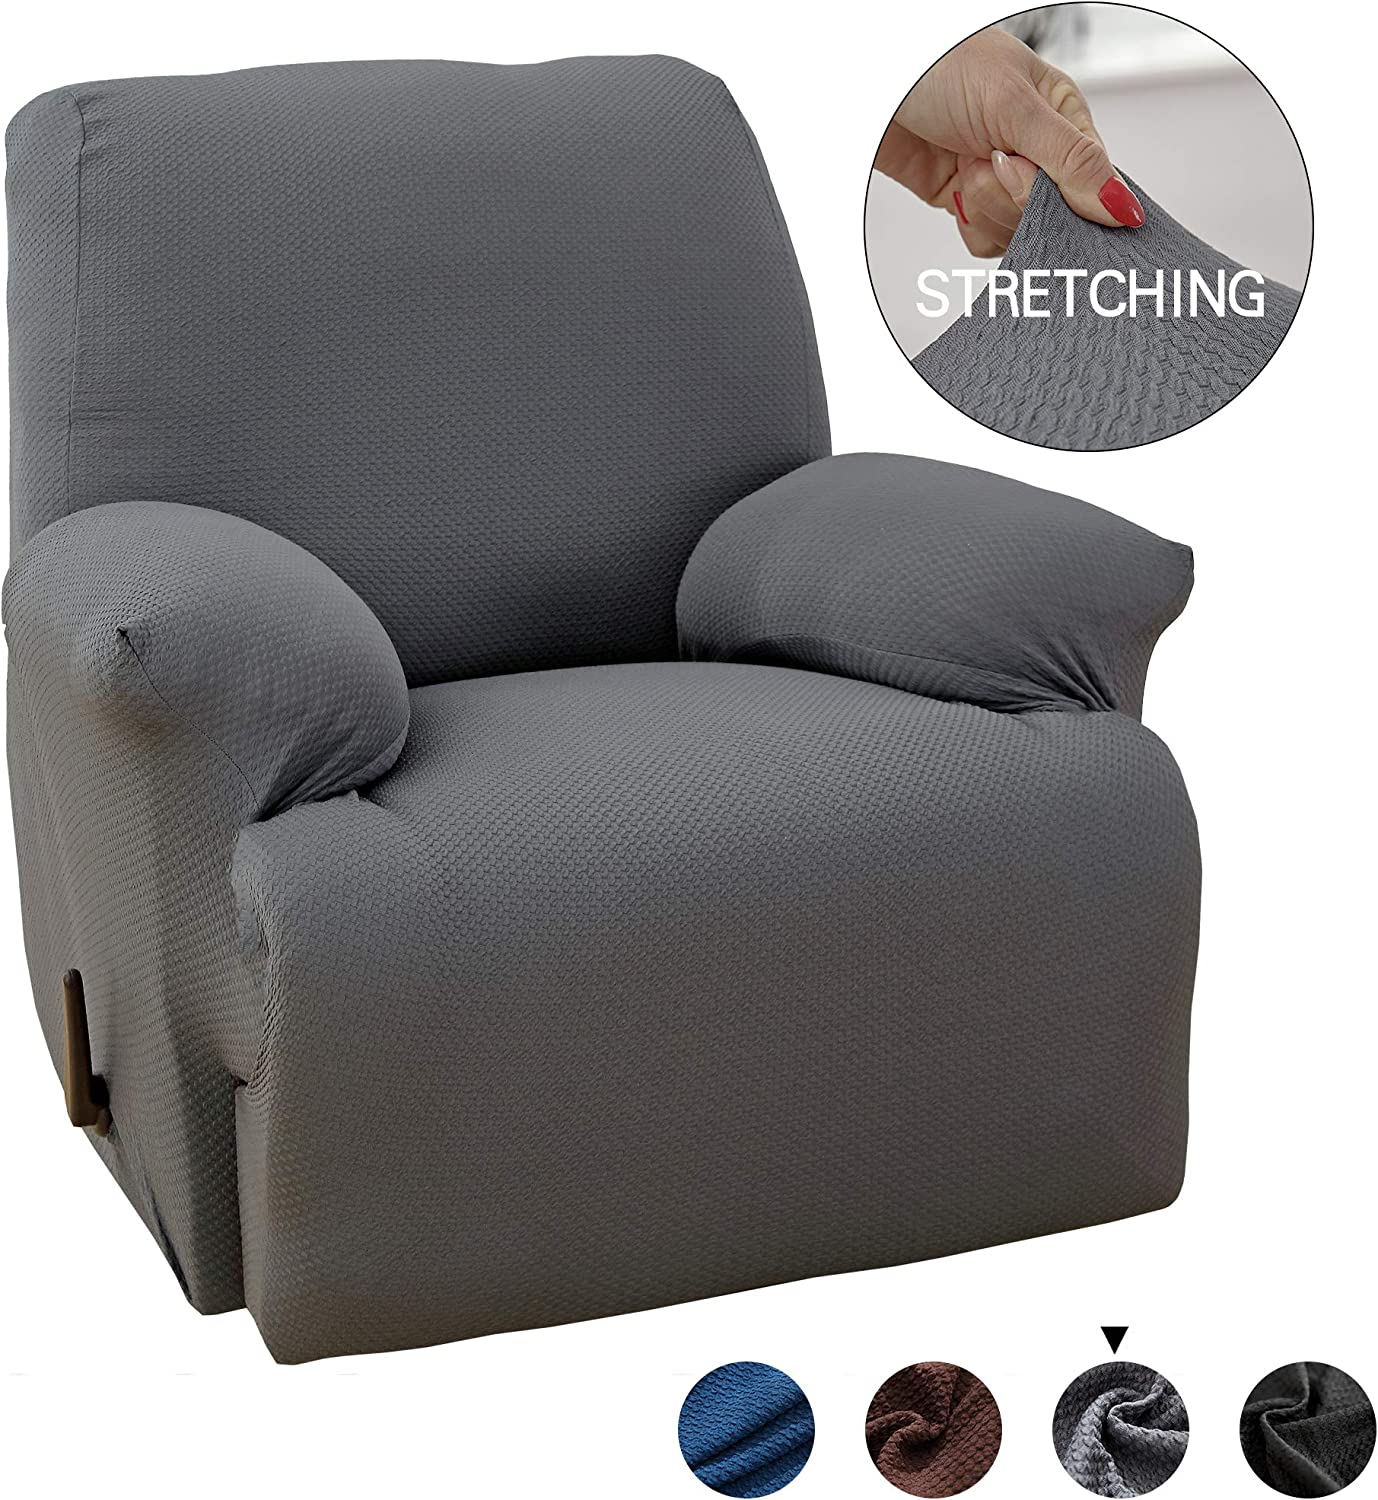 MarCielo One Piece Stretch Recliner Slipcover Stretch Fit Furniture Chair Recliner Lazy Boy Cover Slipcover 1 Piece Couch Cover (Gray)